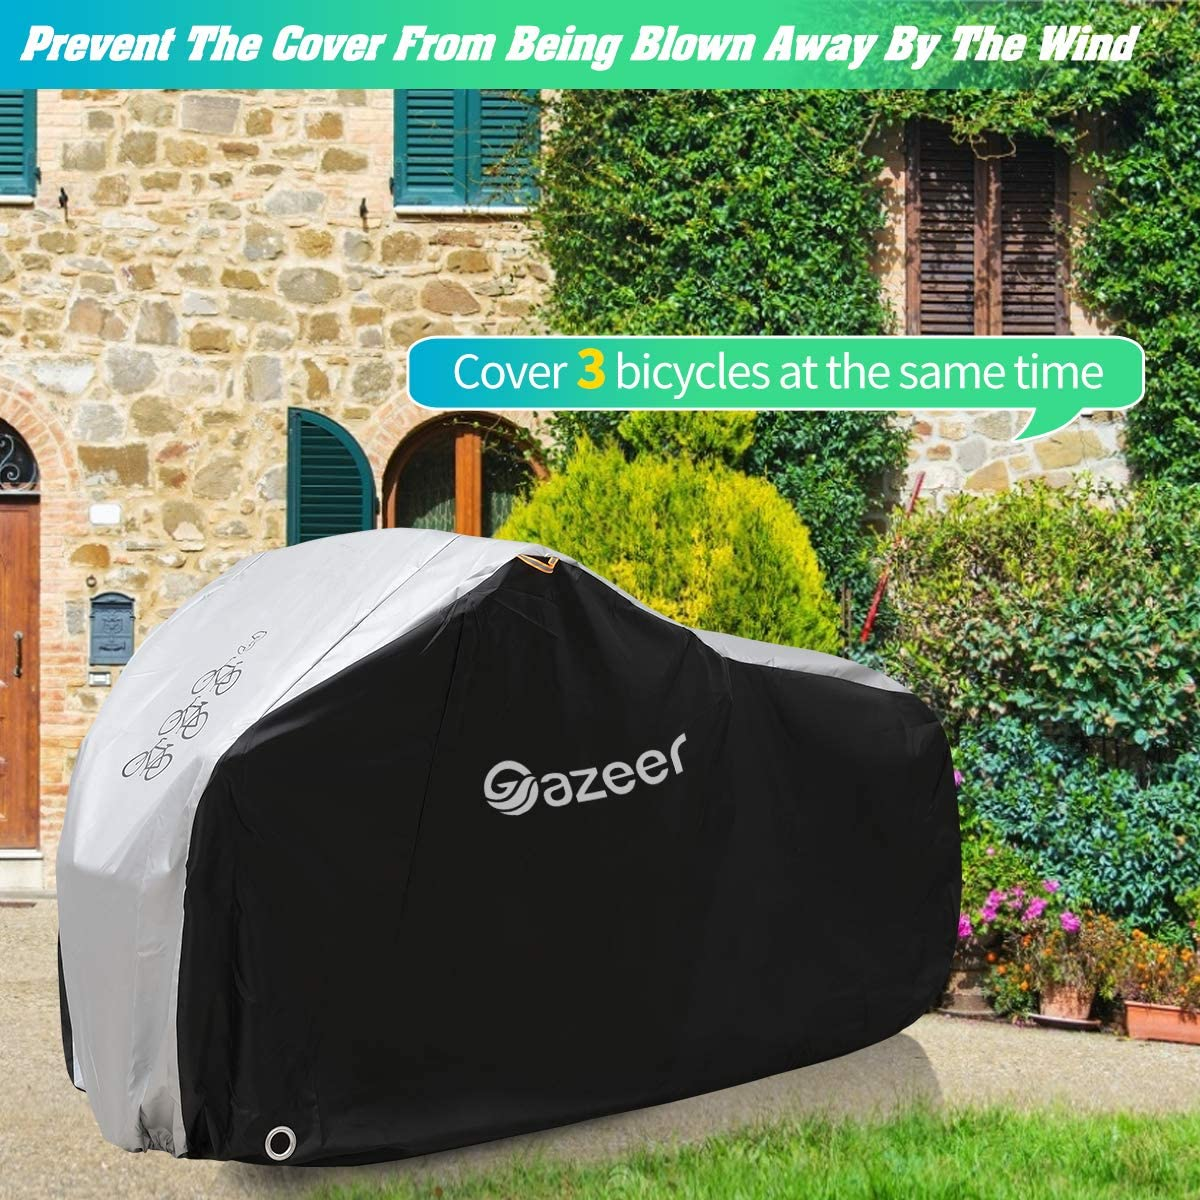 Gazeer Bicycle Cover with Lock Hole Reflective Safety Loops for 29er Mountain Road Electric Bike Motorcycle Cruiser Outdoor Storage Waterproof Anti-UV Heavy Duty Ripstop Material 210D